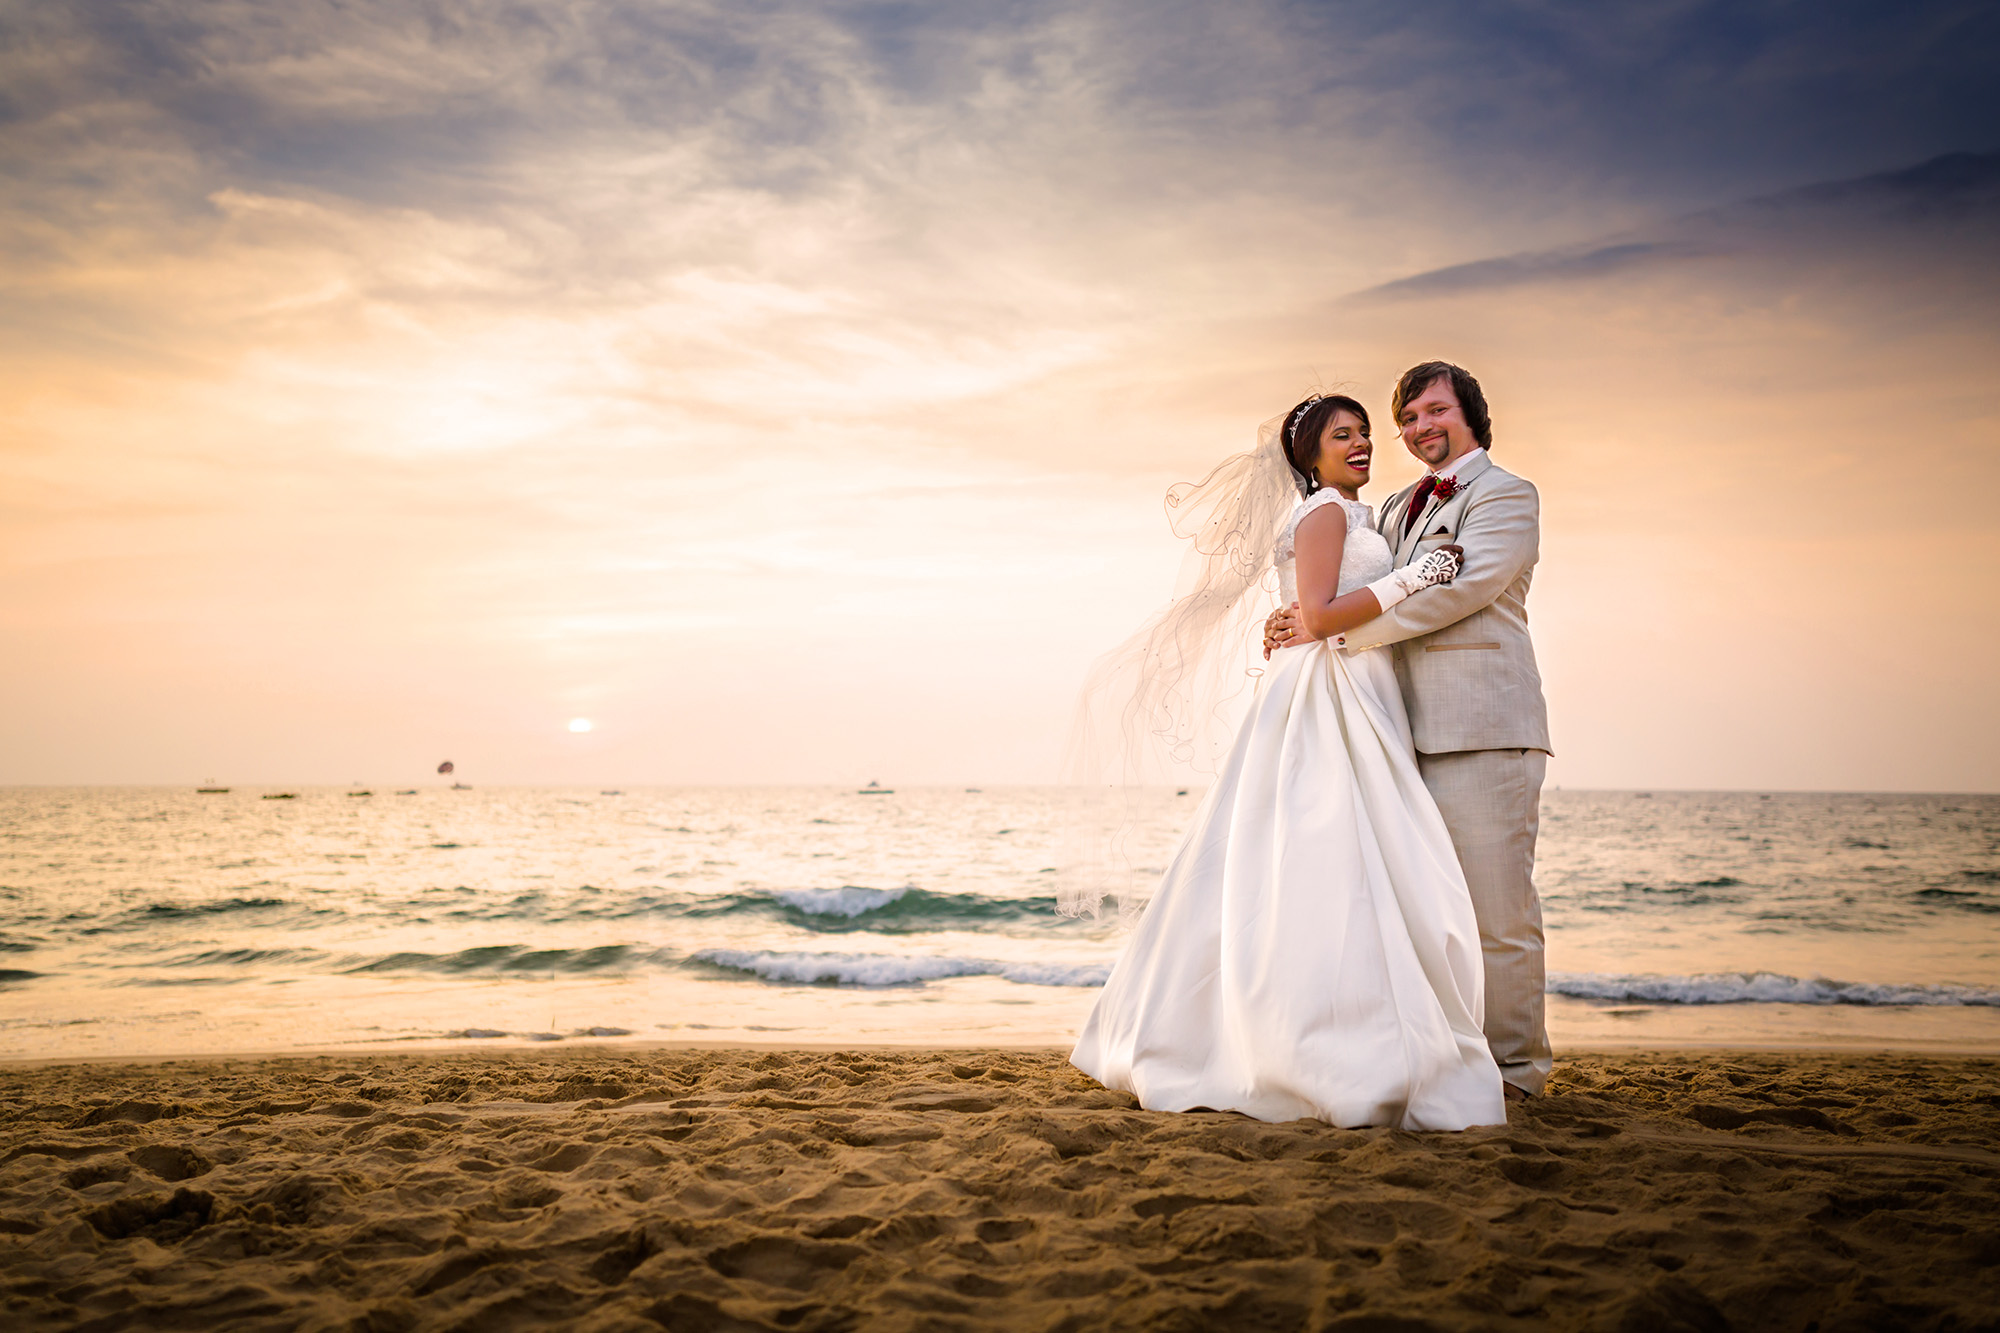 Minella & Tom | Goa Church Destination Wedding